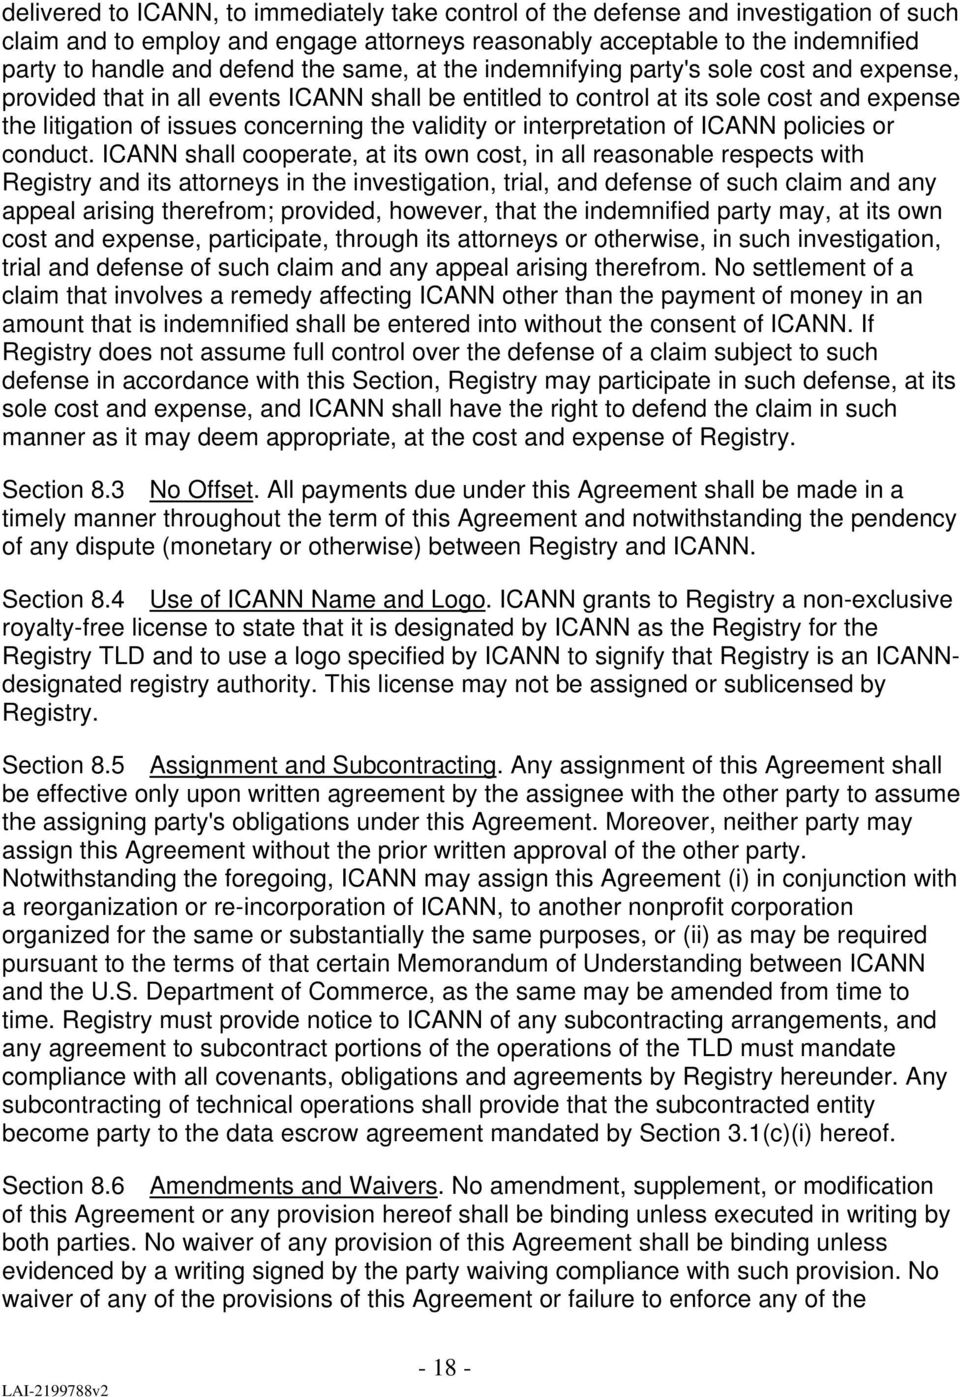 validity or interpretation of ICANN policies or conduct.